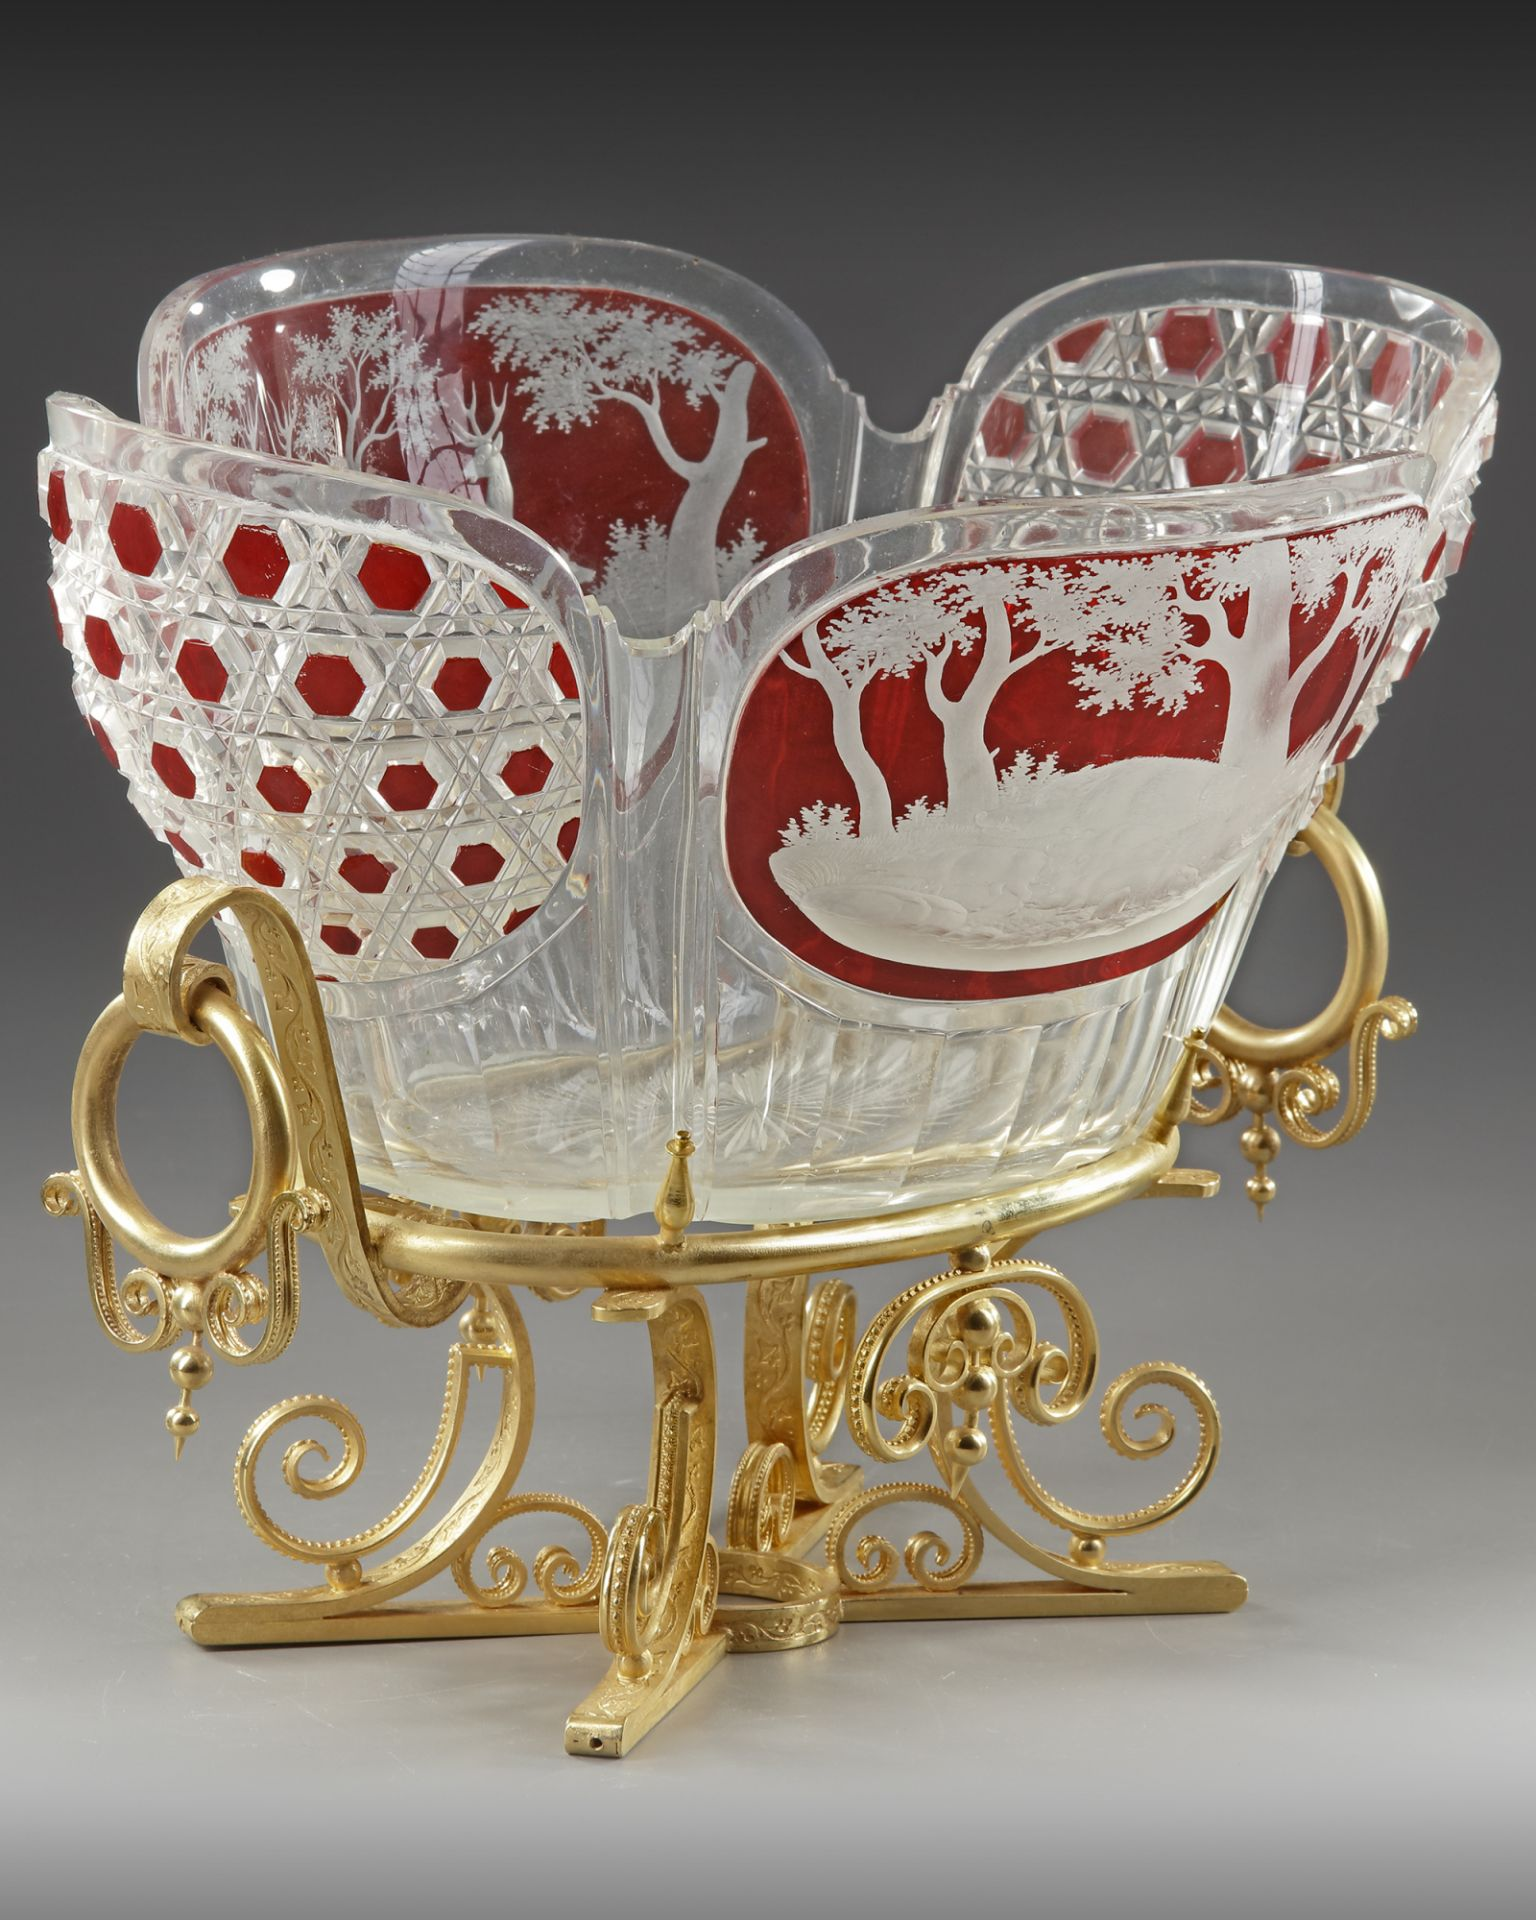 A CRYSTAL CUP, LATE 19TH CENTURY - Image 3 of 5